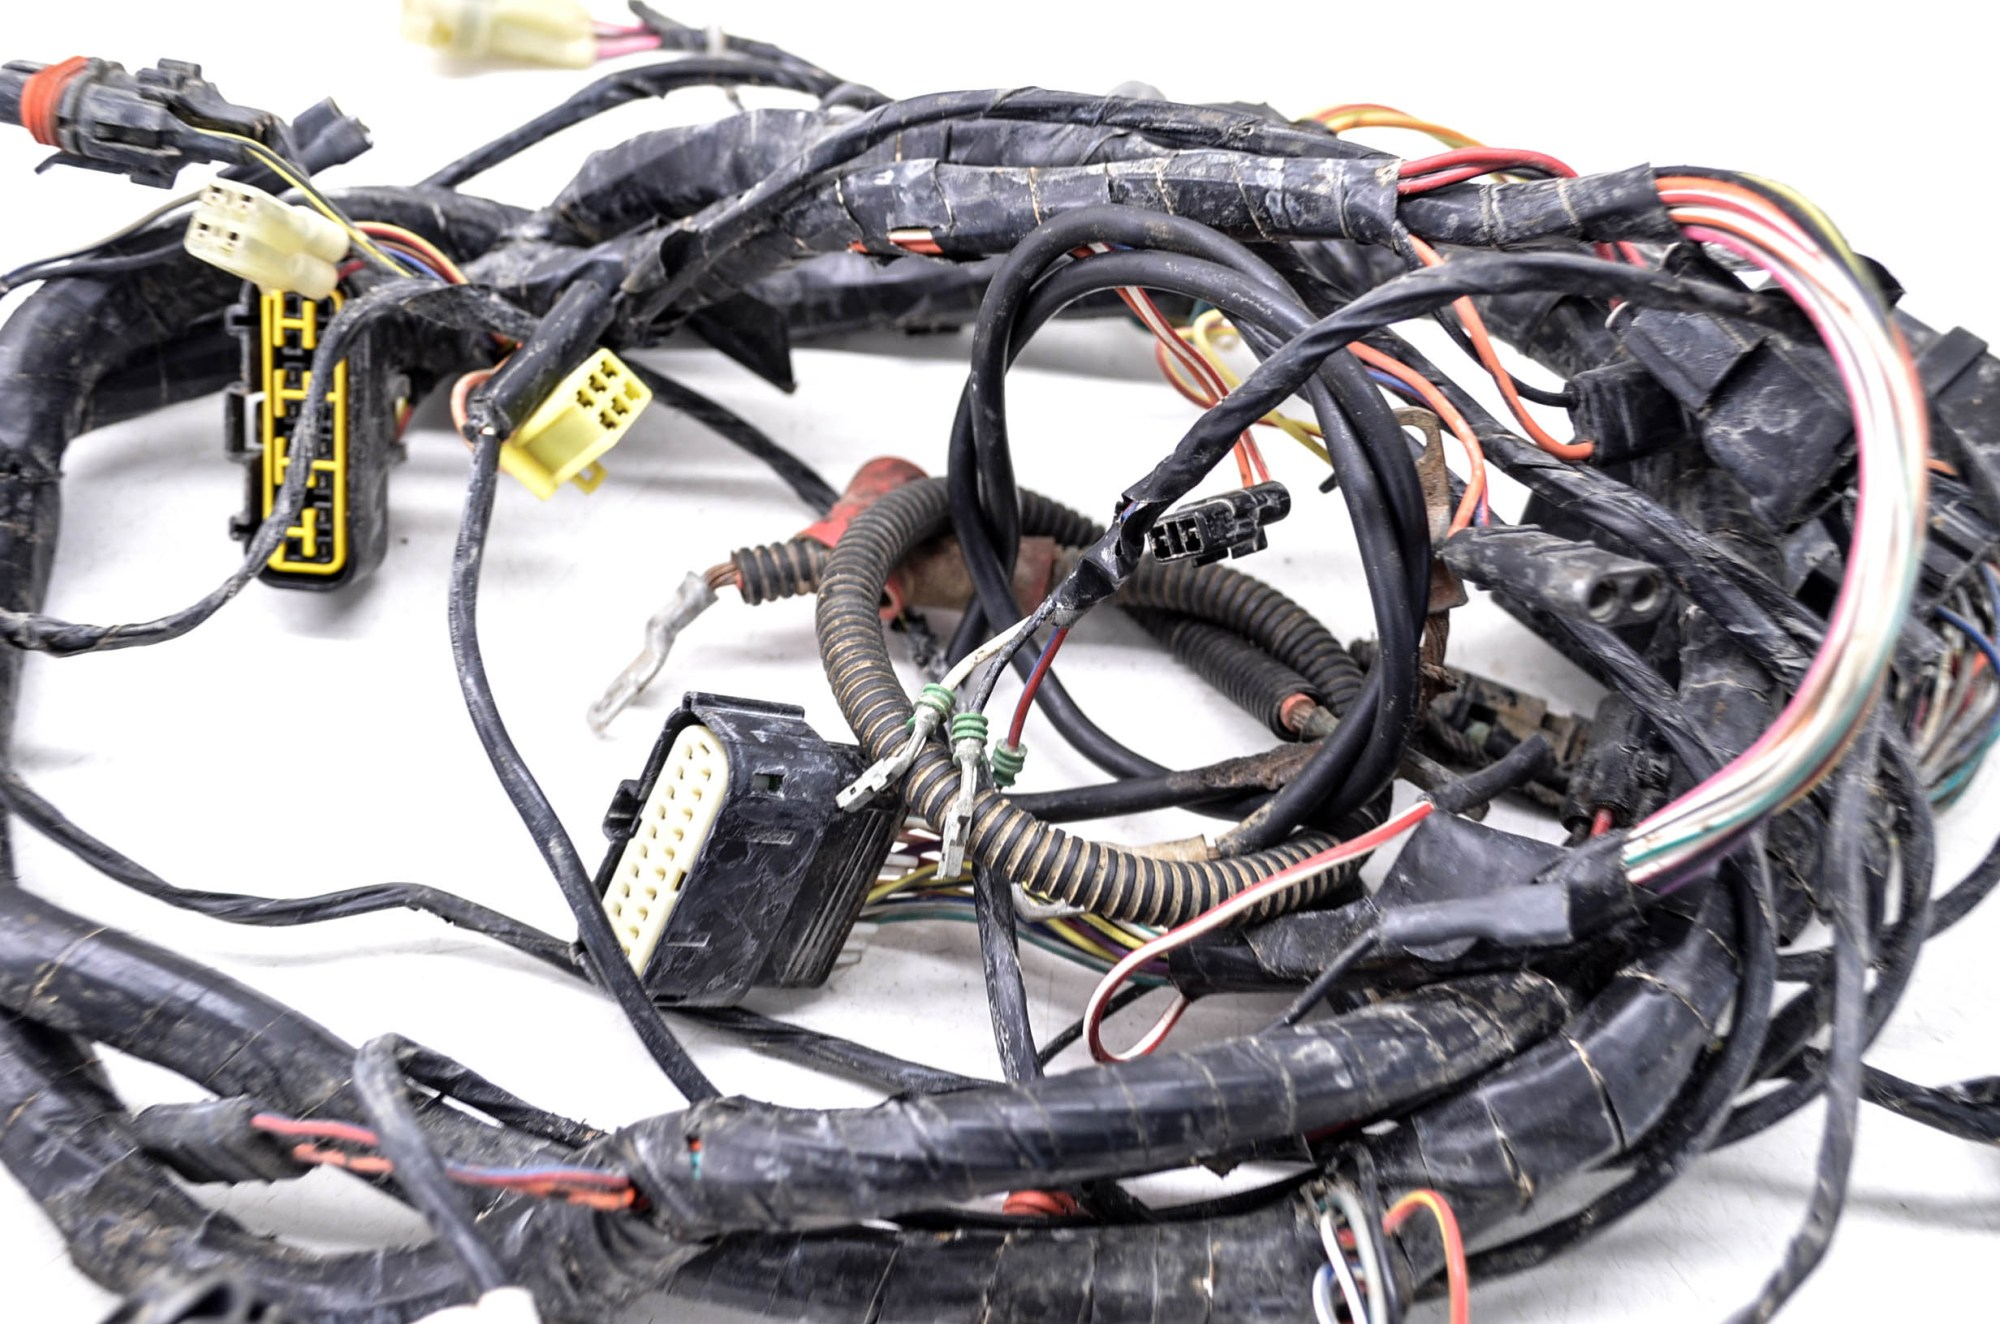 hight resolution of 07 arctic cat 400 4x4 wire harness electrical wiring ebay gallery image